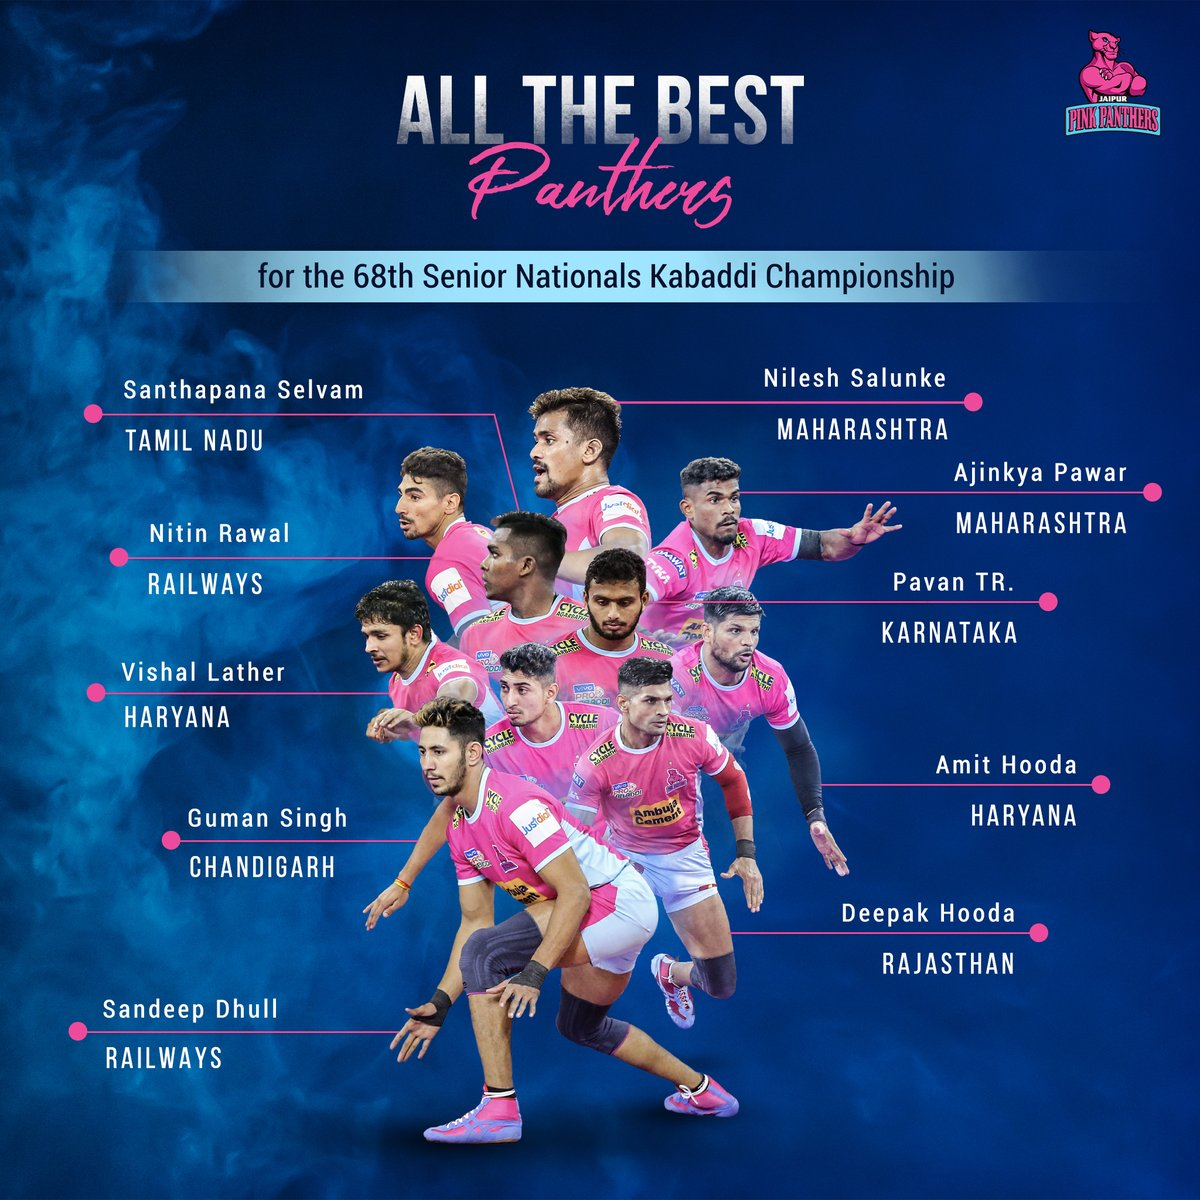 Wishing our #Panthers the very best for the 68th Senior Nationals Kabaddi Championship!   Which team are you supporting?   Leave your answers in the comments section below.  #PantherSquad #JaiHanuman #TopCats #JaipurPinkPanthers #JPP #Jaipur #vivoprokabaddi